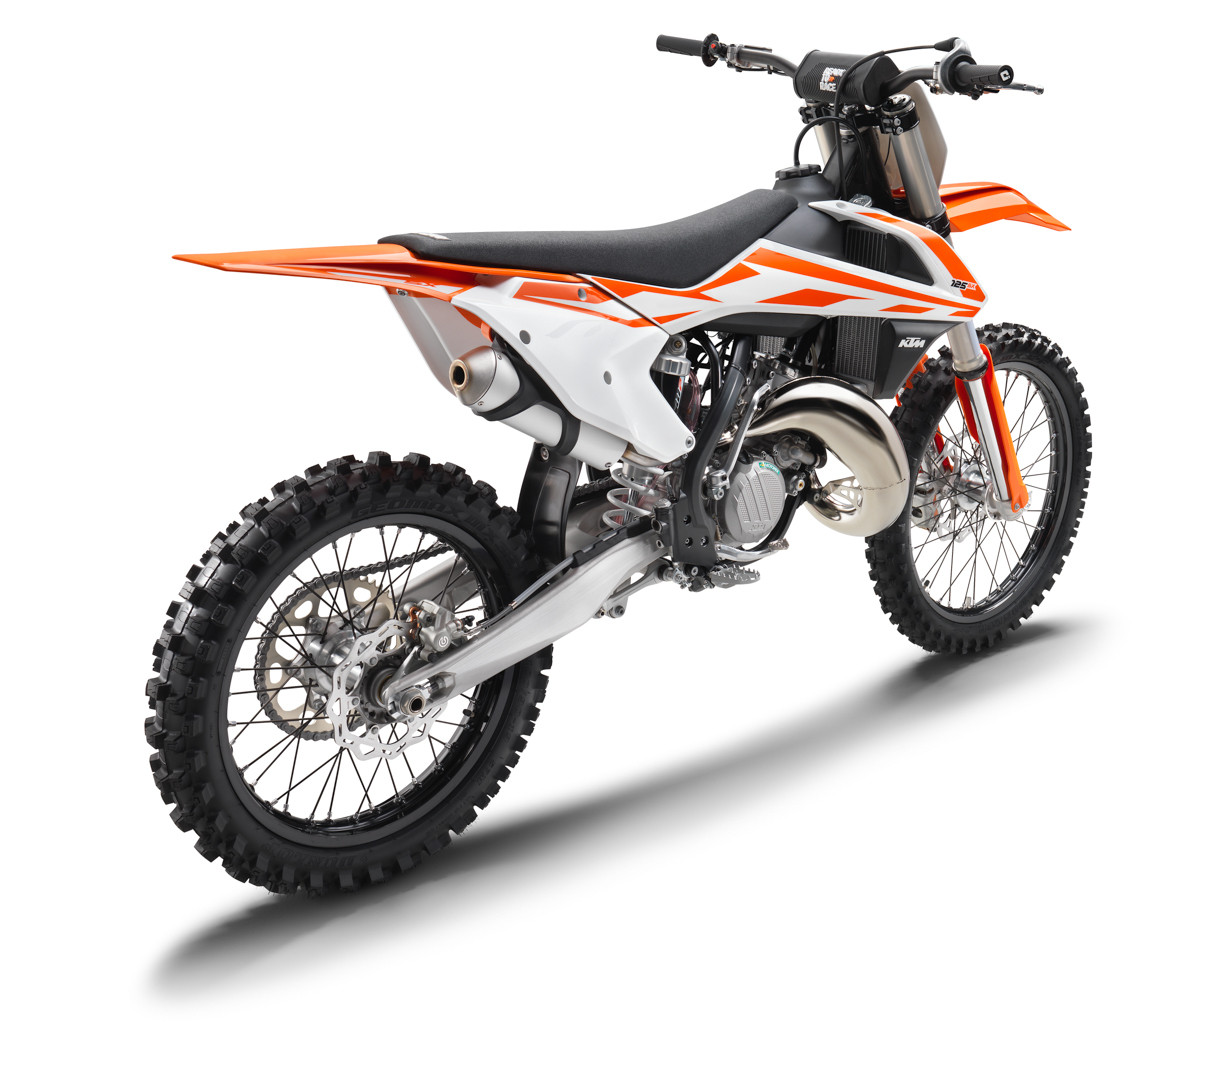 2017 ktm 125 sx first look 2017 ktm motocross and cross country line motocross pictures. Black Bedroom Furniture Sets. Home Design Ideas